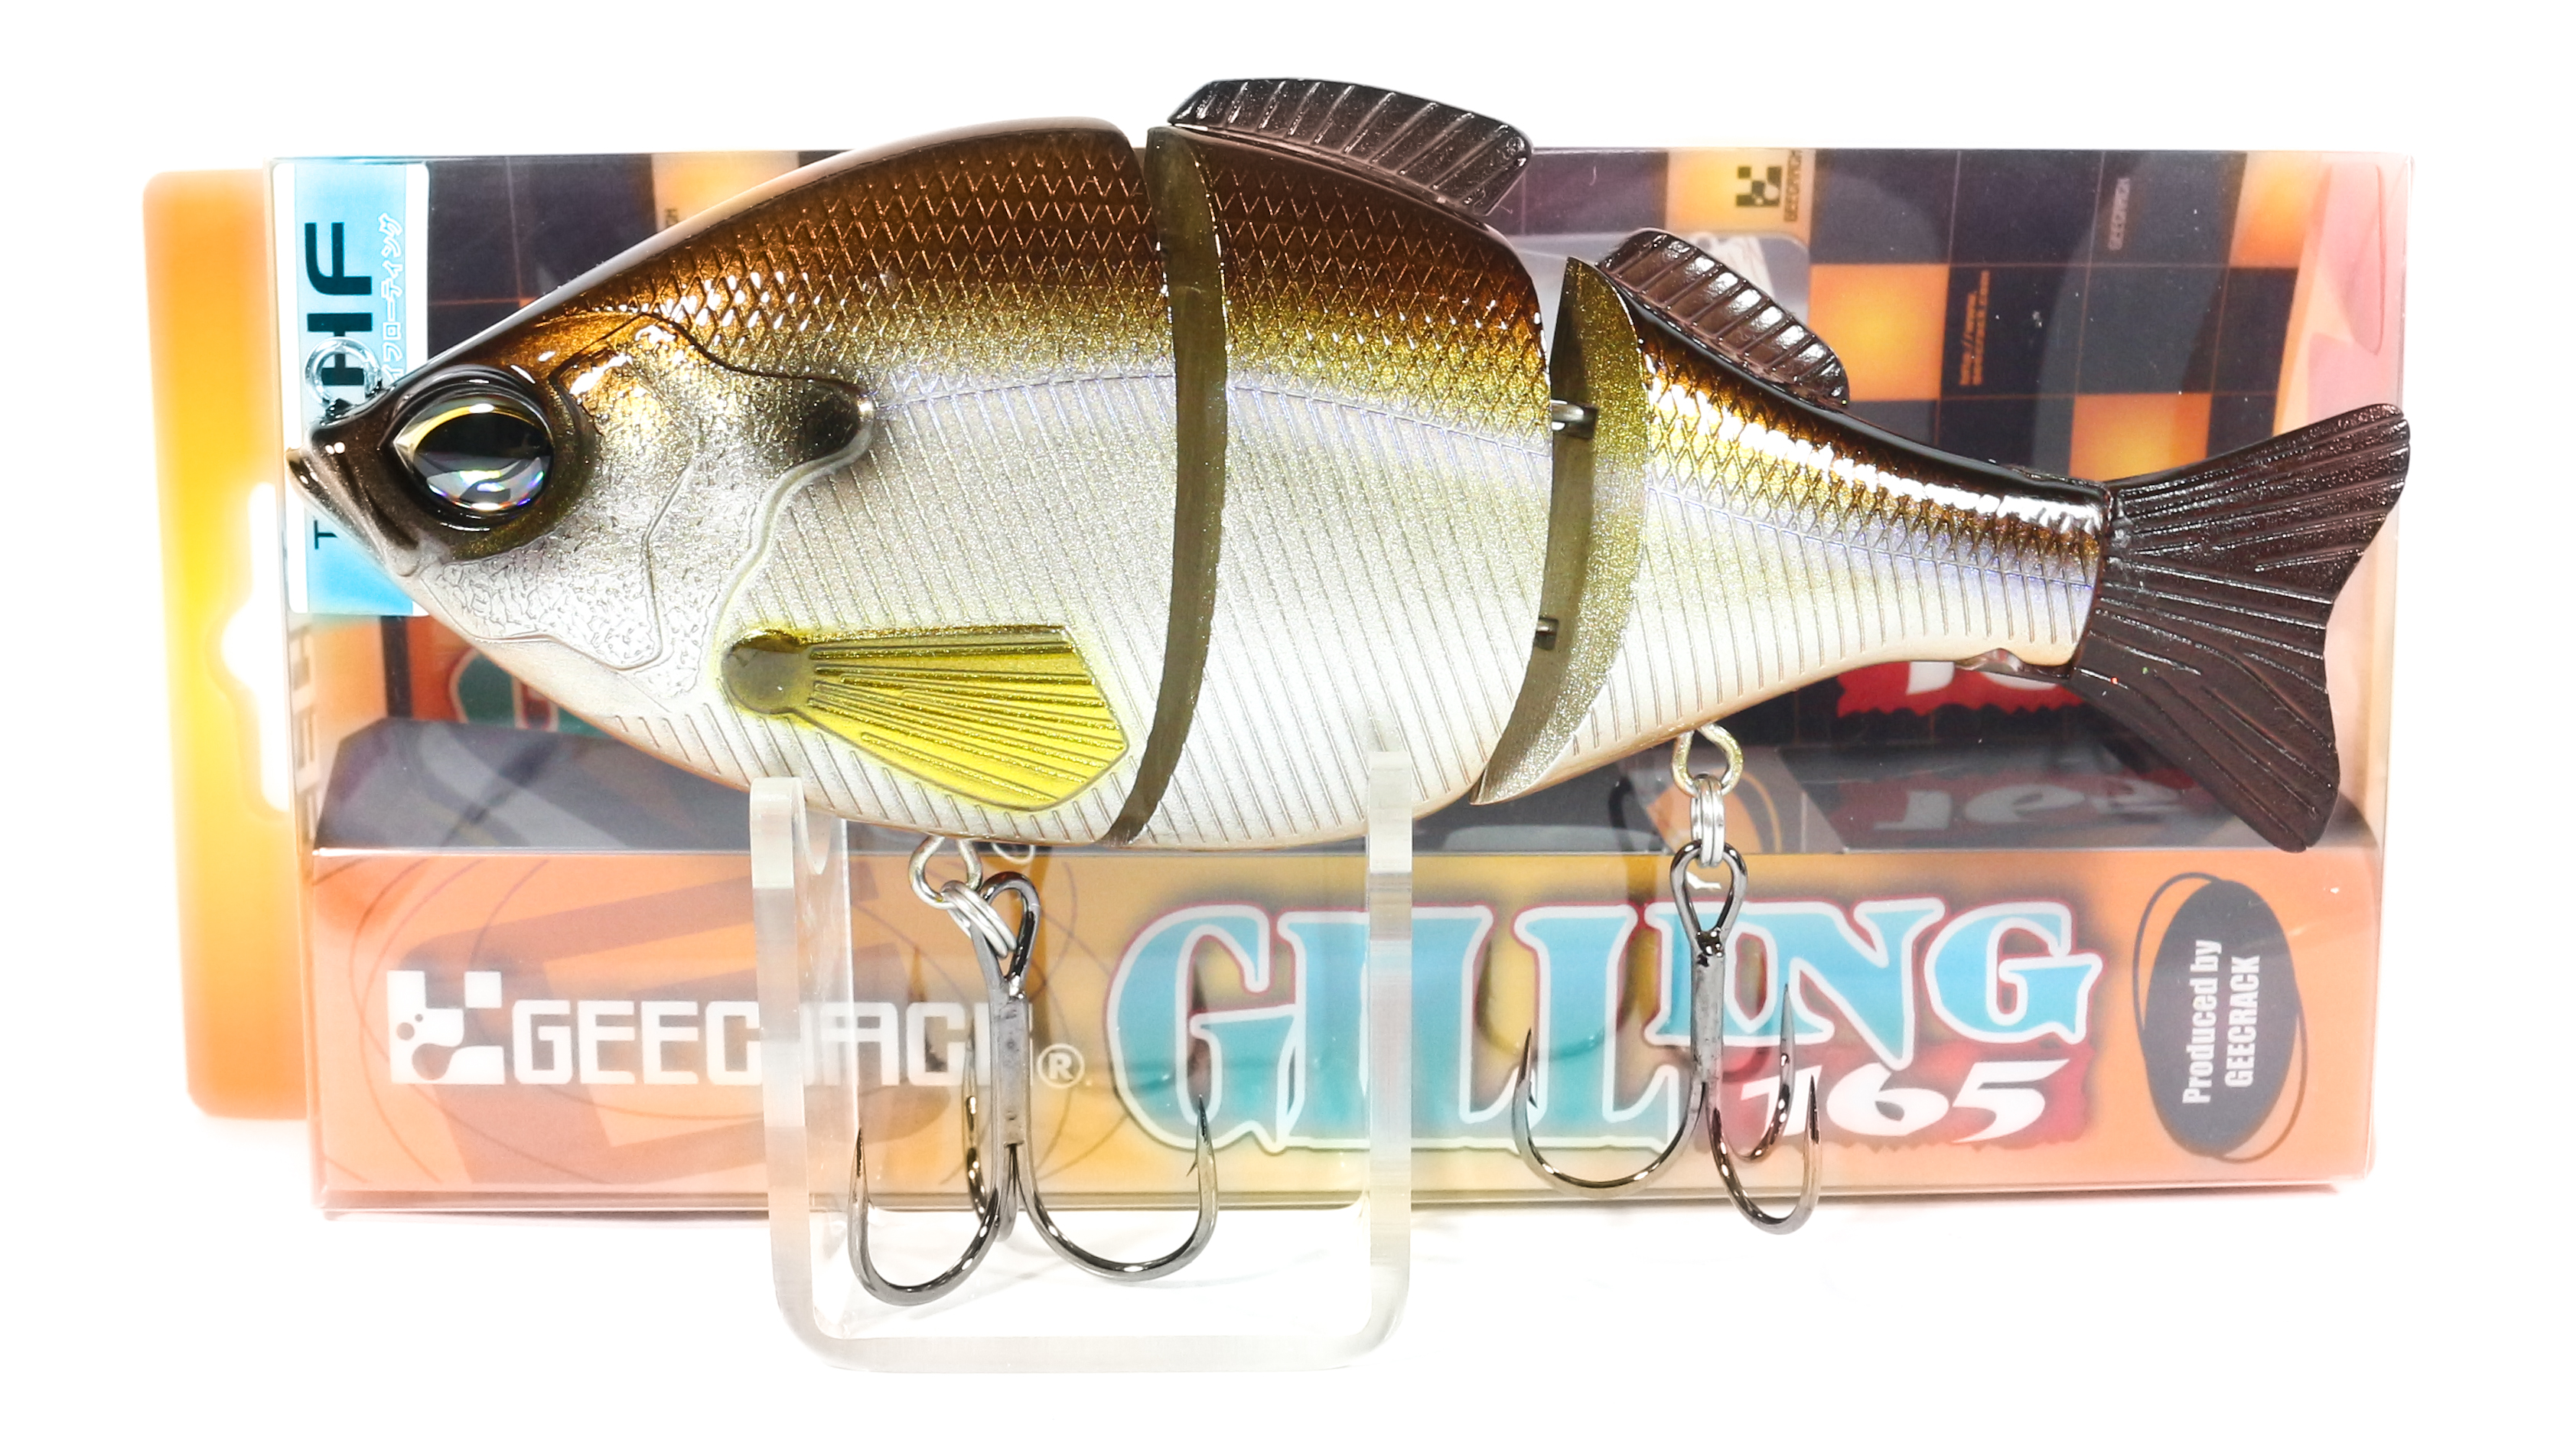 Sale Gee Crack Gilling 165 HF Jointed High Floating Lure 031 (8492)